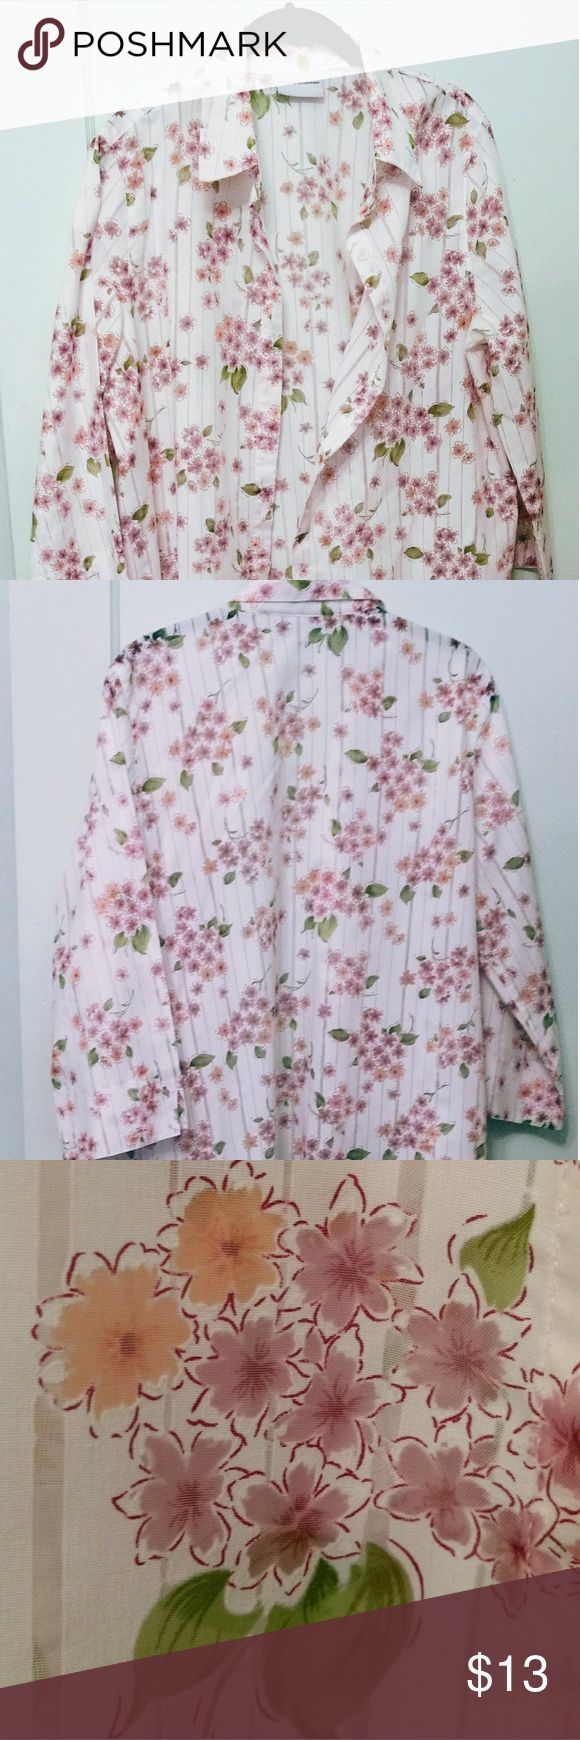 Alfred Dunner floral print burnout blouse This bright floral blouse has a white ground with peach, green, lavender green flowers and leaves. It has 3/4 sleeves and white buttons. There is an extra button on the left side. 55%cotton, 45% polyester. Care:machine wash, cold. Line?  dry. A fabulous spring or summer look with green or peach slacks. Alfred Dunner Tops Blouses